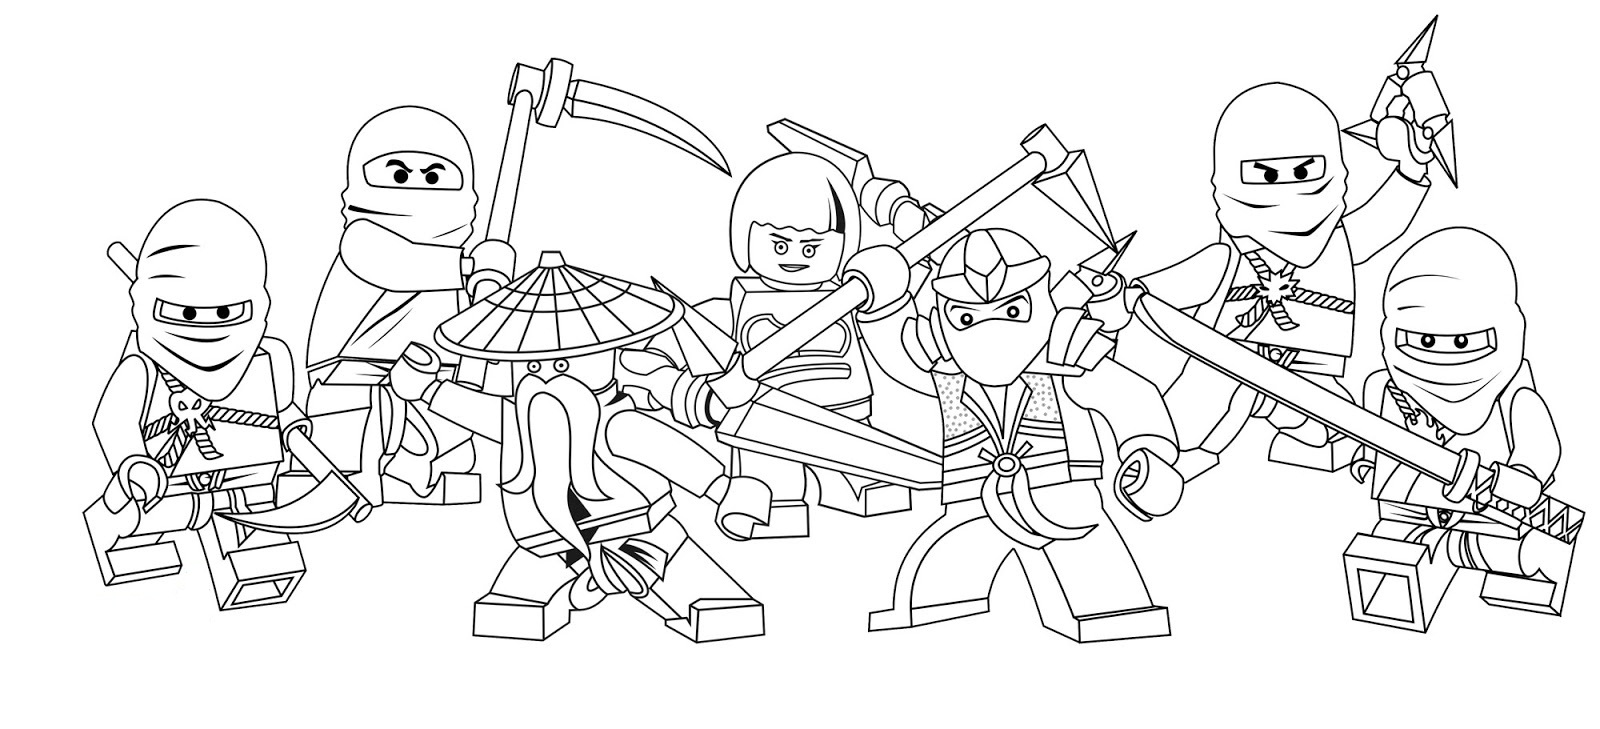 Coloring pages ninjago - Ninjago Coloring Pages Printable